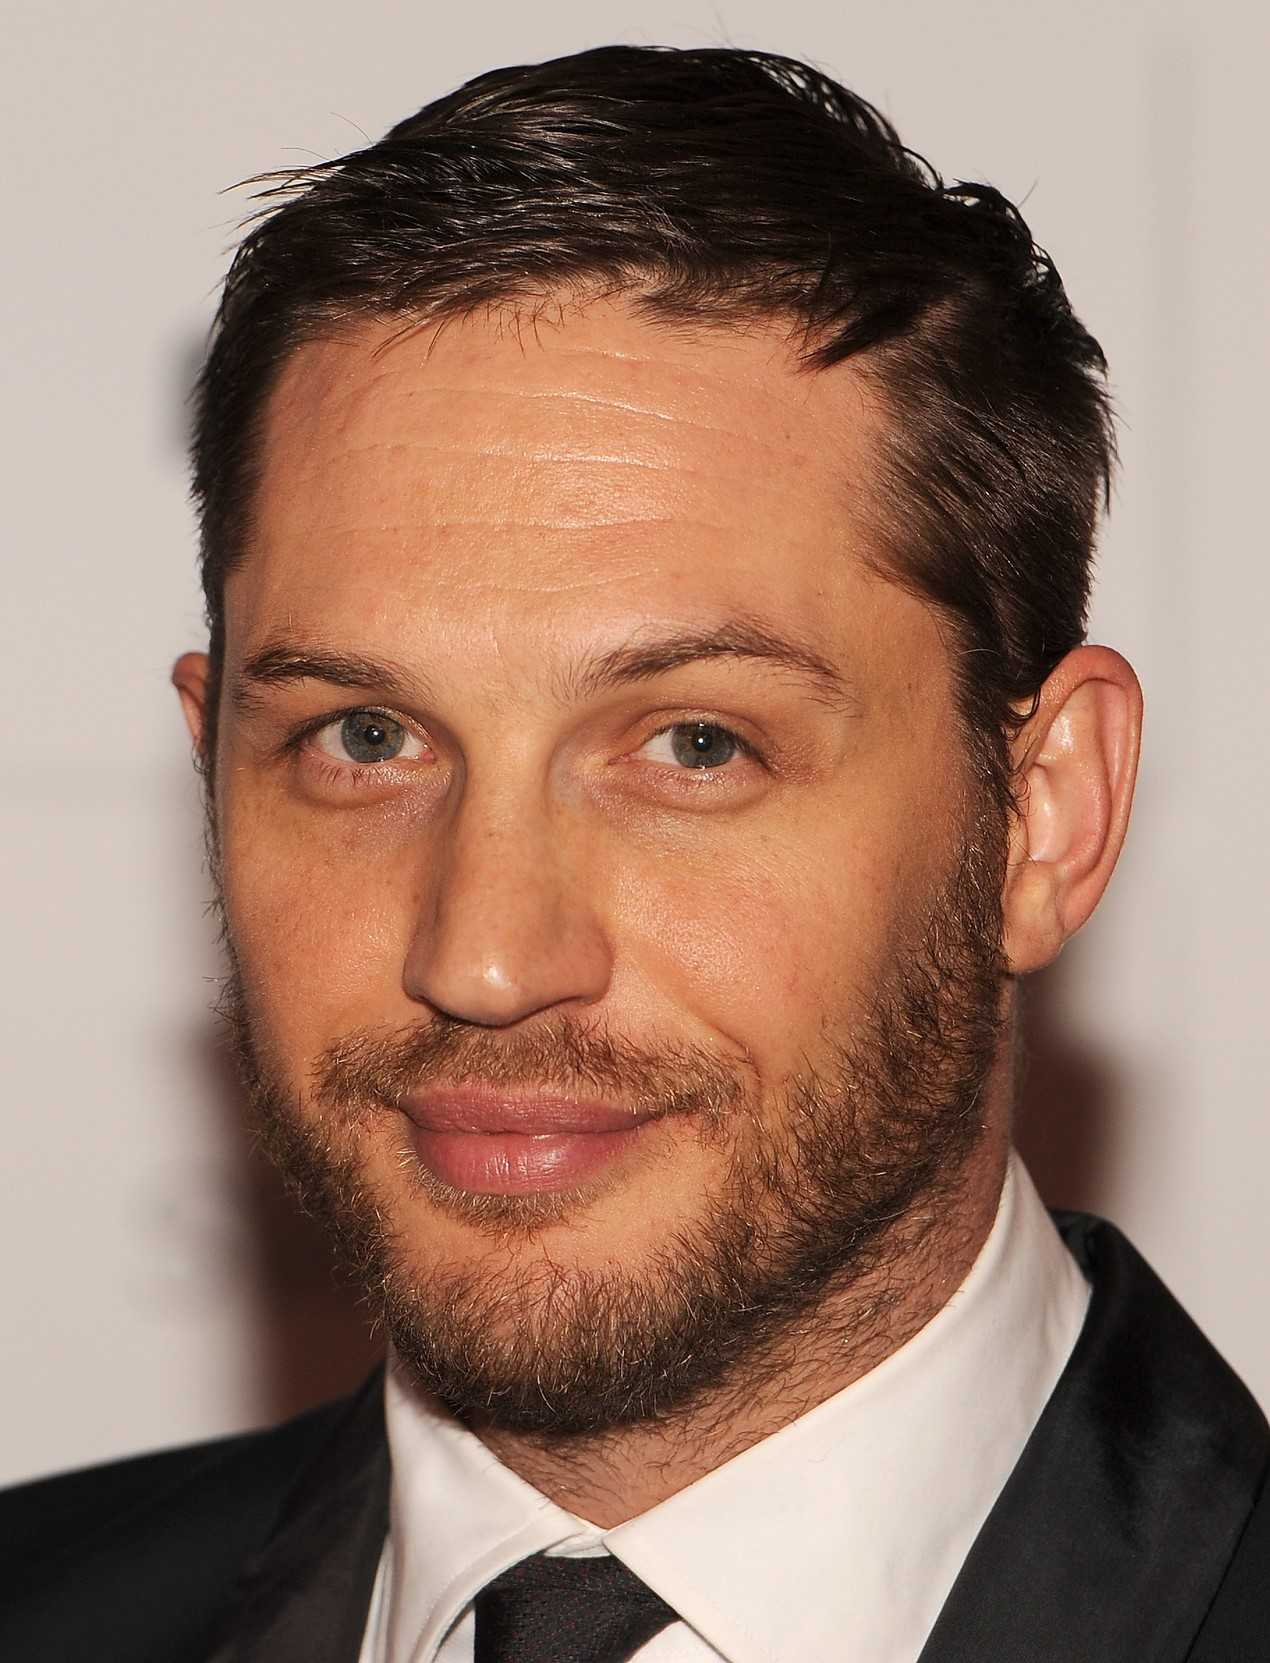 Tom Hardy Explains Why Reporter's 'Sexuality' Question Annoyed Him | Tom Hardy